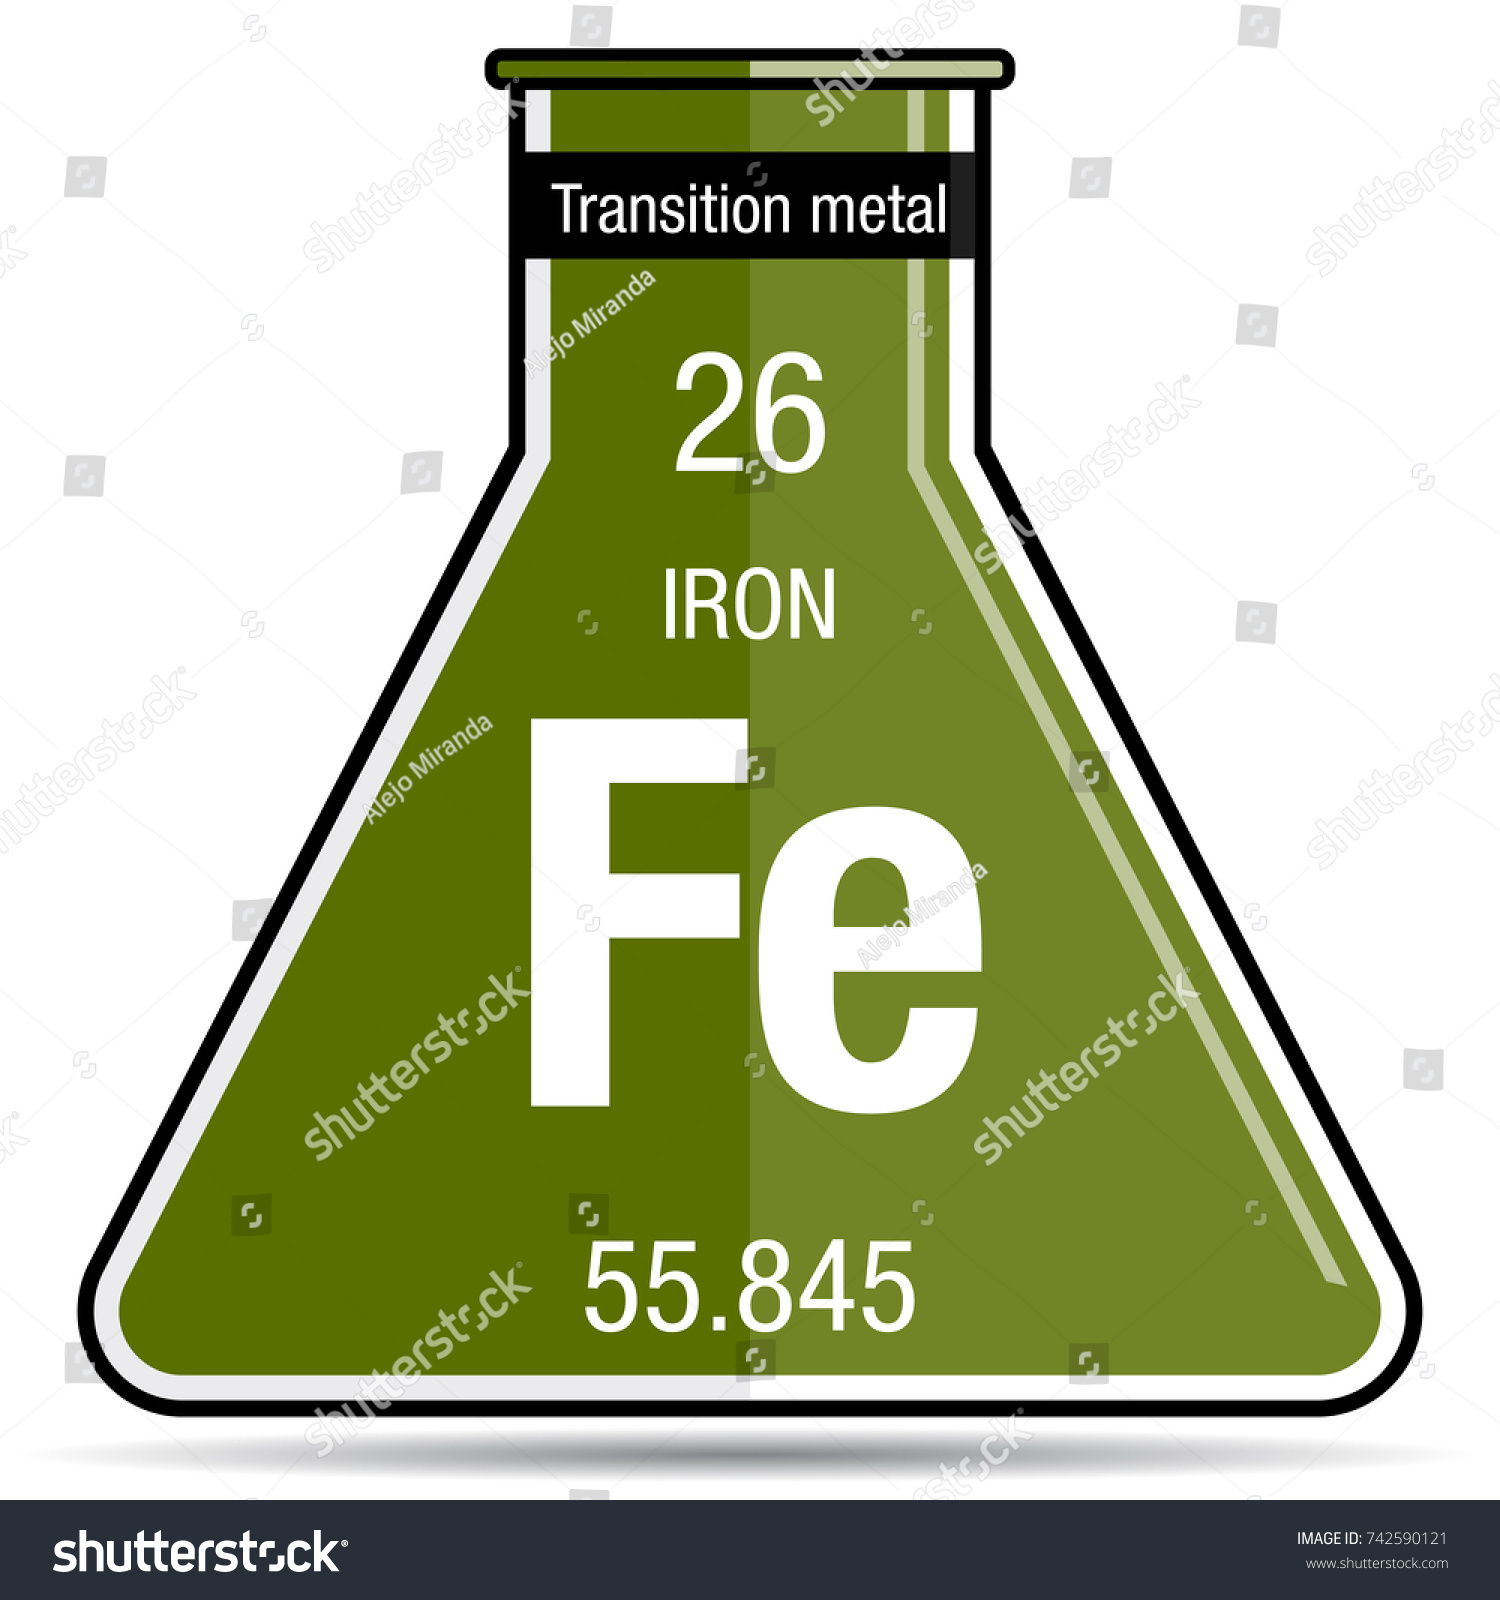 Iron symbol in periodic table image collections periodic table periodic table symbol for iron images periodic table images iron symbol on chemical flask element stock gamestrikefo Image collections